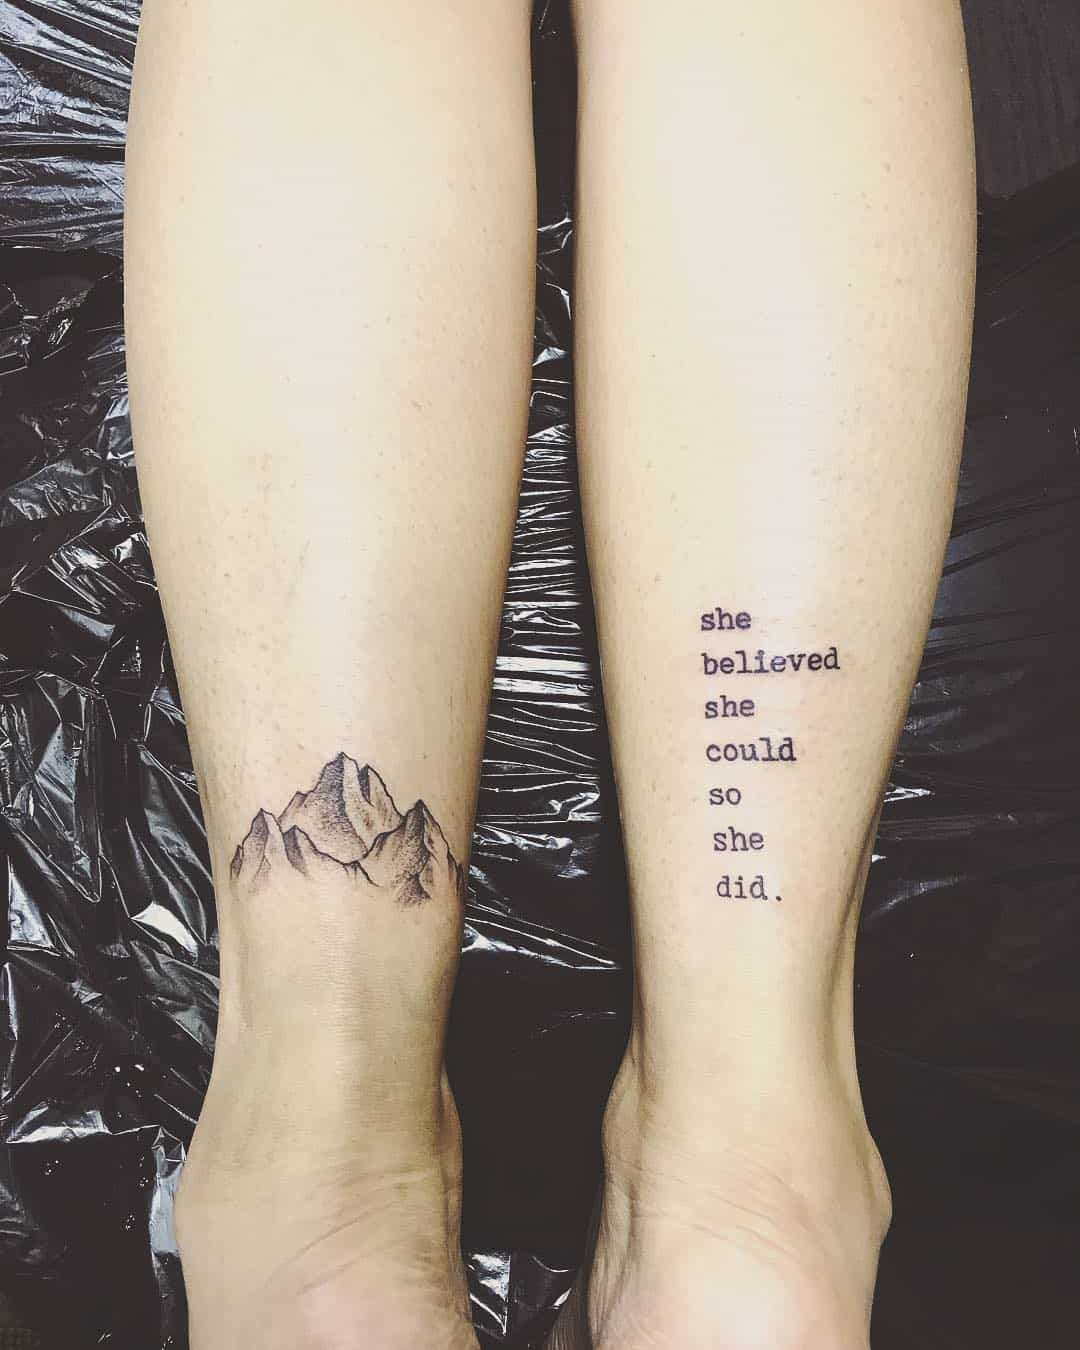 ff8558d6b1898 Mountain tattoos represent strength and stability. They also represent  victory by over coming all odds. Are you ready to climb the mountain?